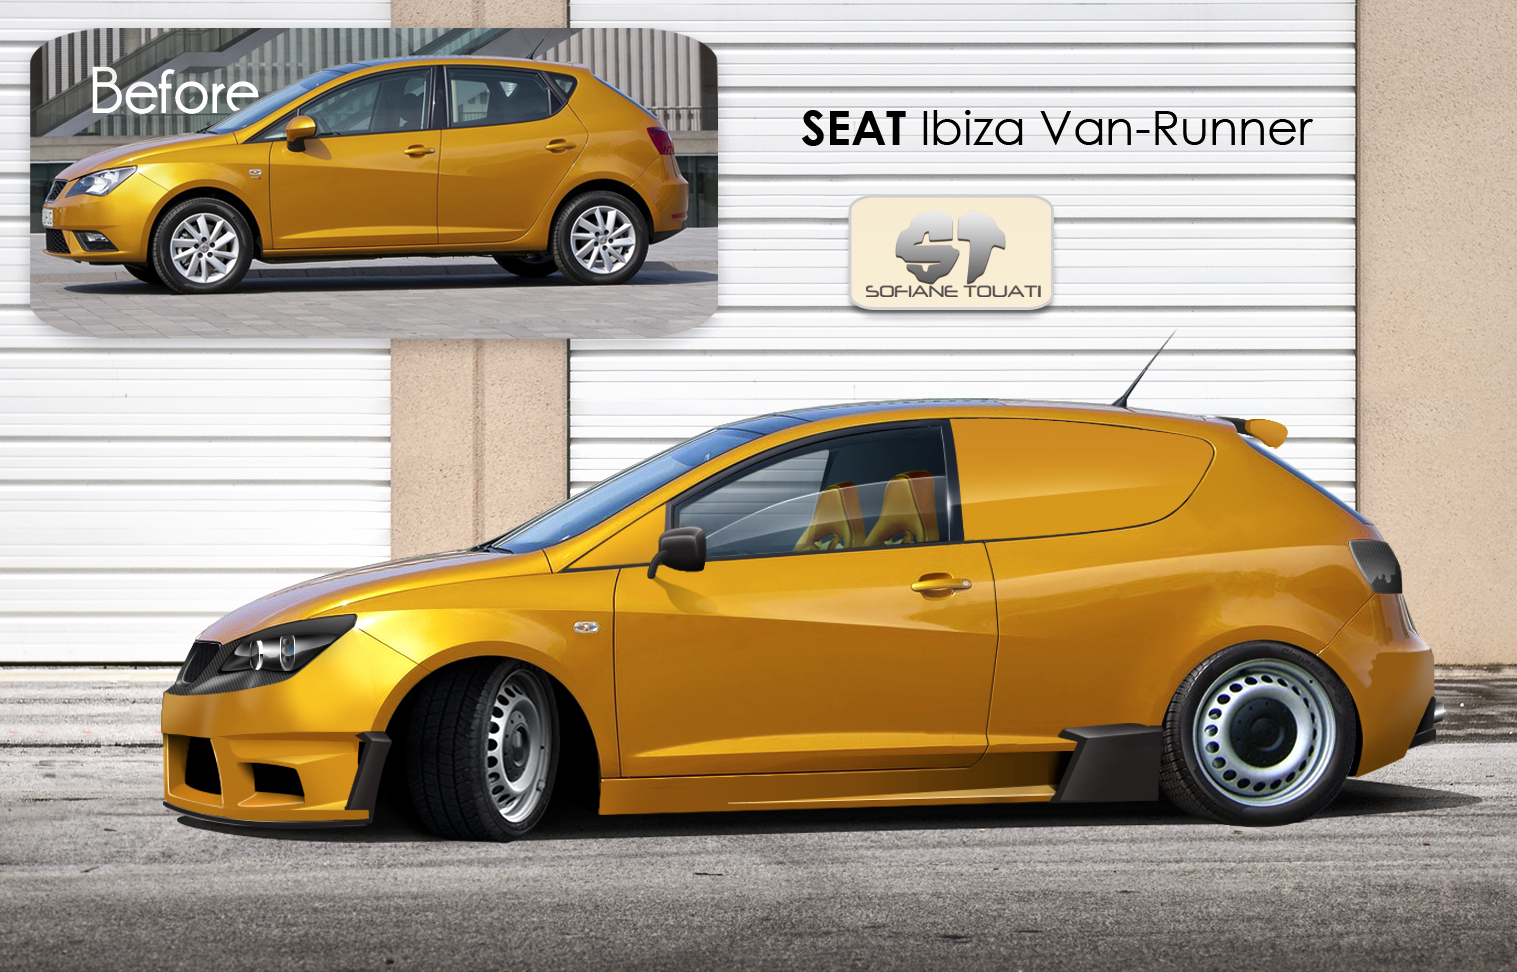 seat ibiza van runner virtual tuning by sofianetouati on deviantart. Black Bedroom Furniture Sets. Home Design Ideas